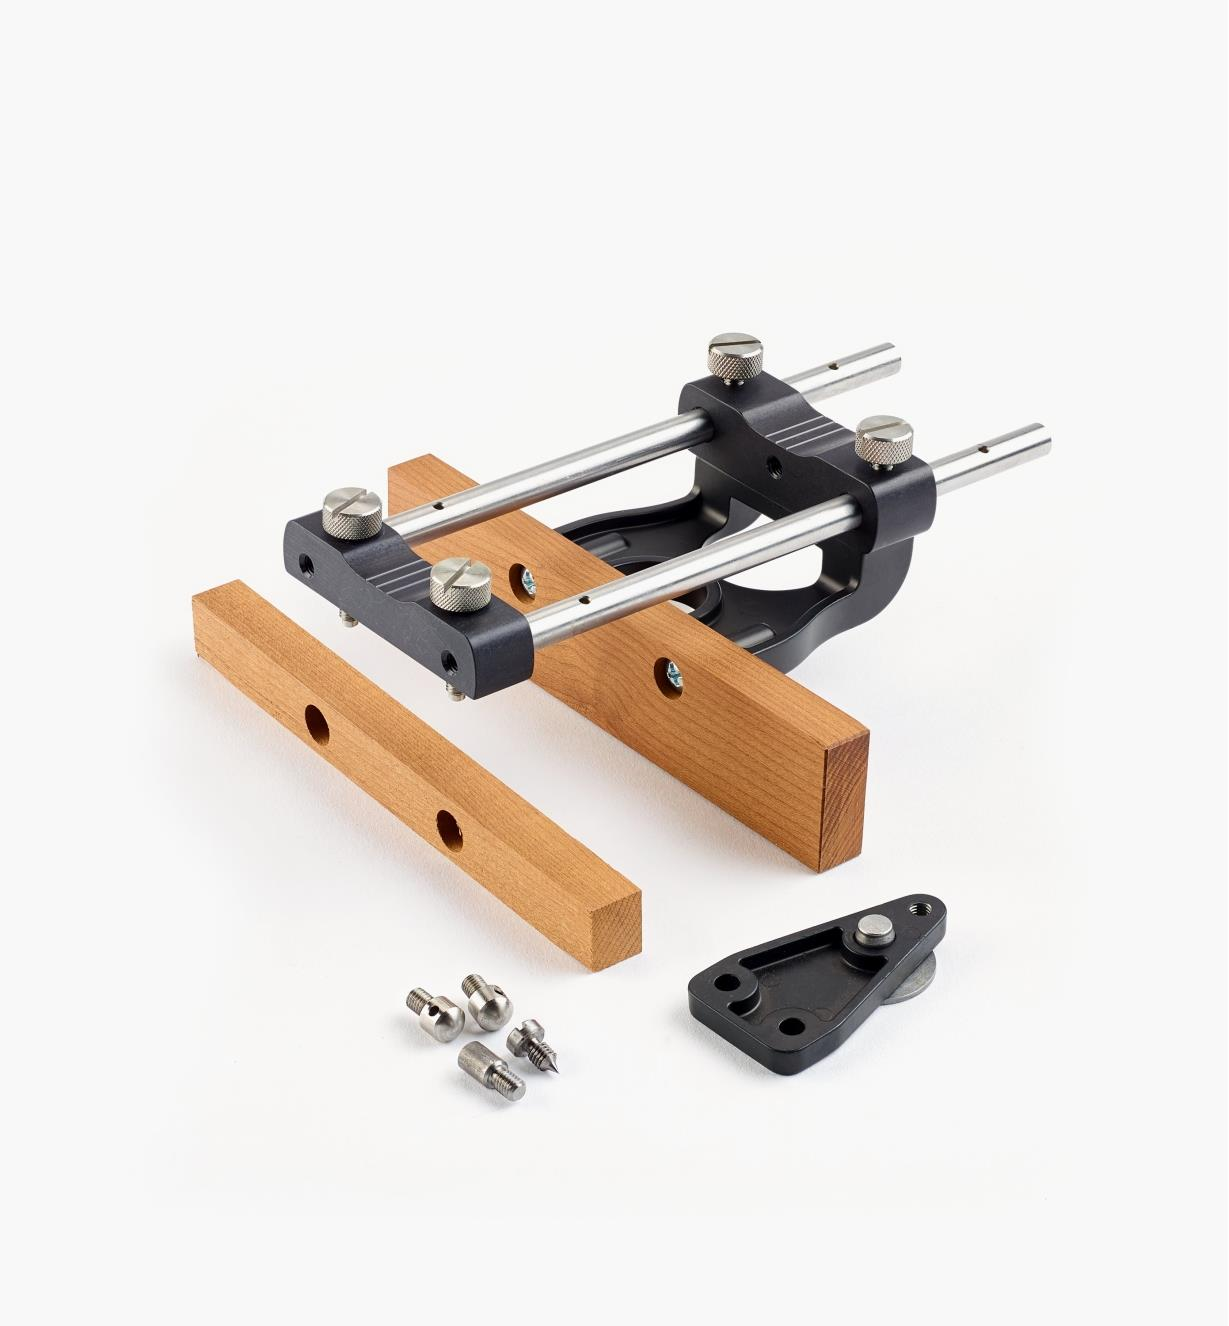 05J6503 - Fence and Center Kit